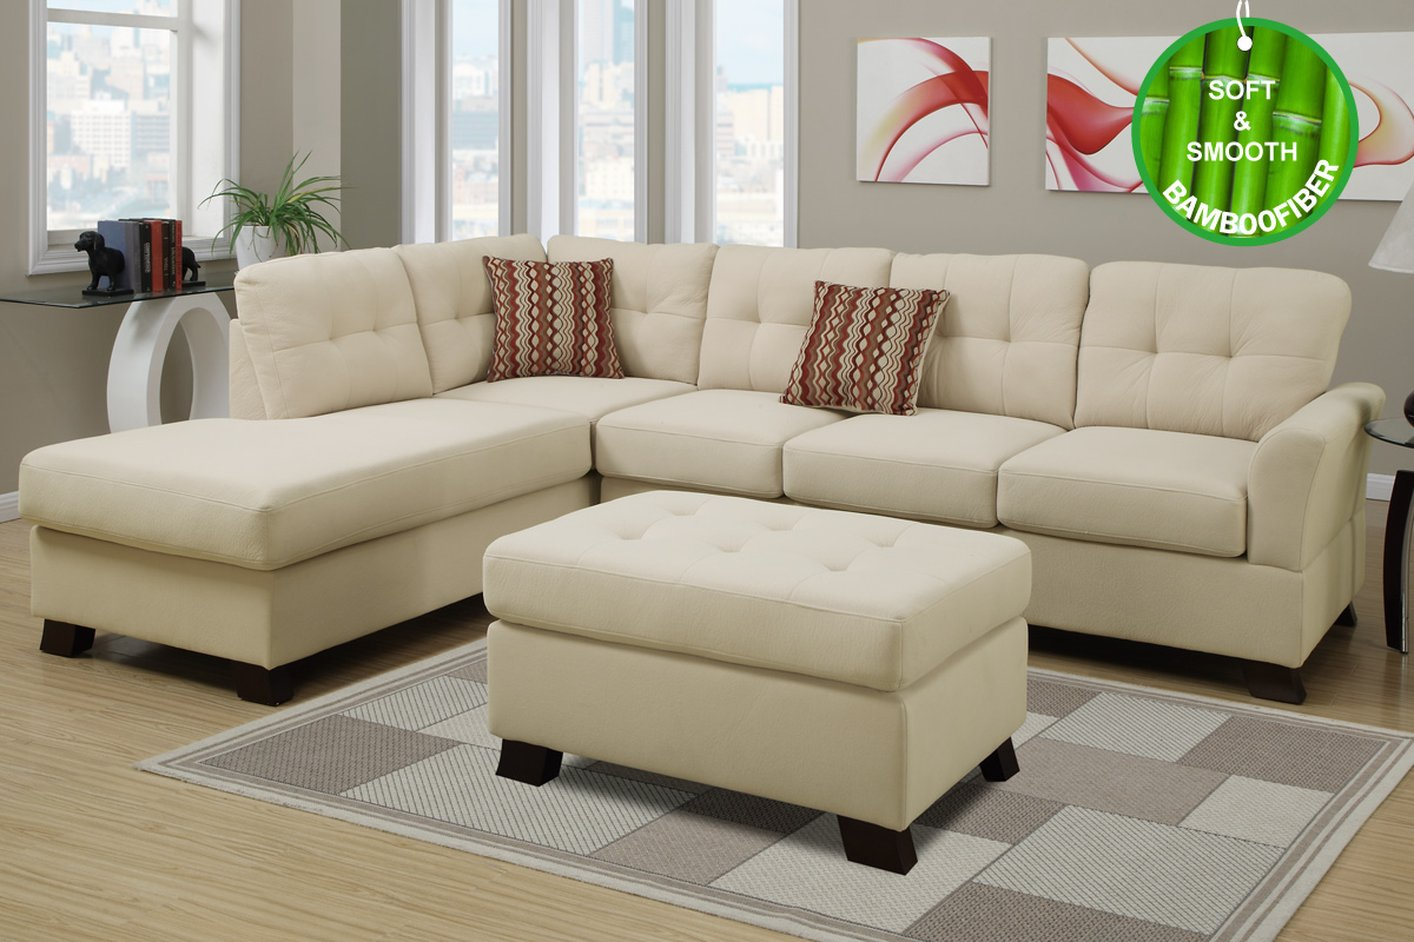 Superieur Beige Fabric Sectional Sofa And Ottoman